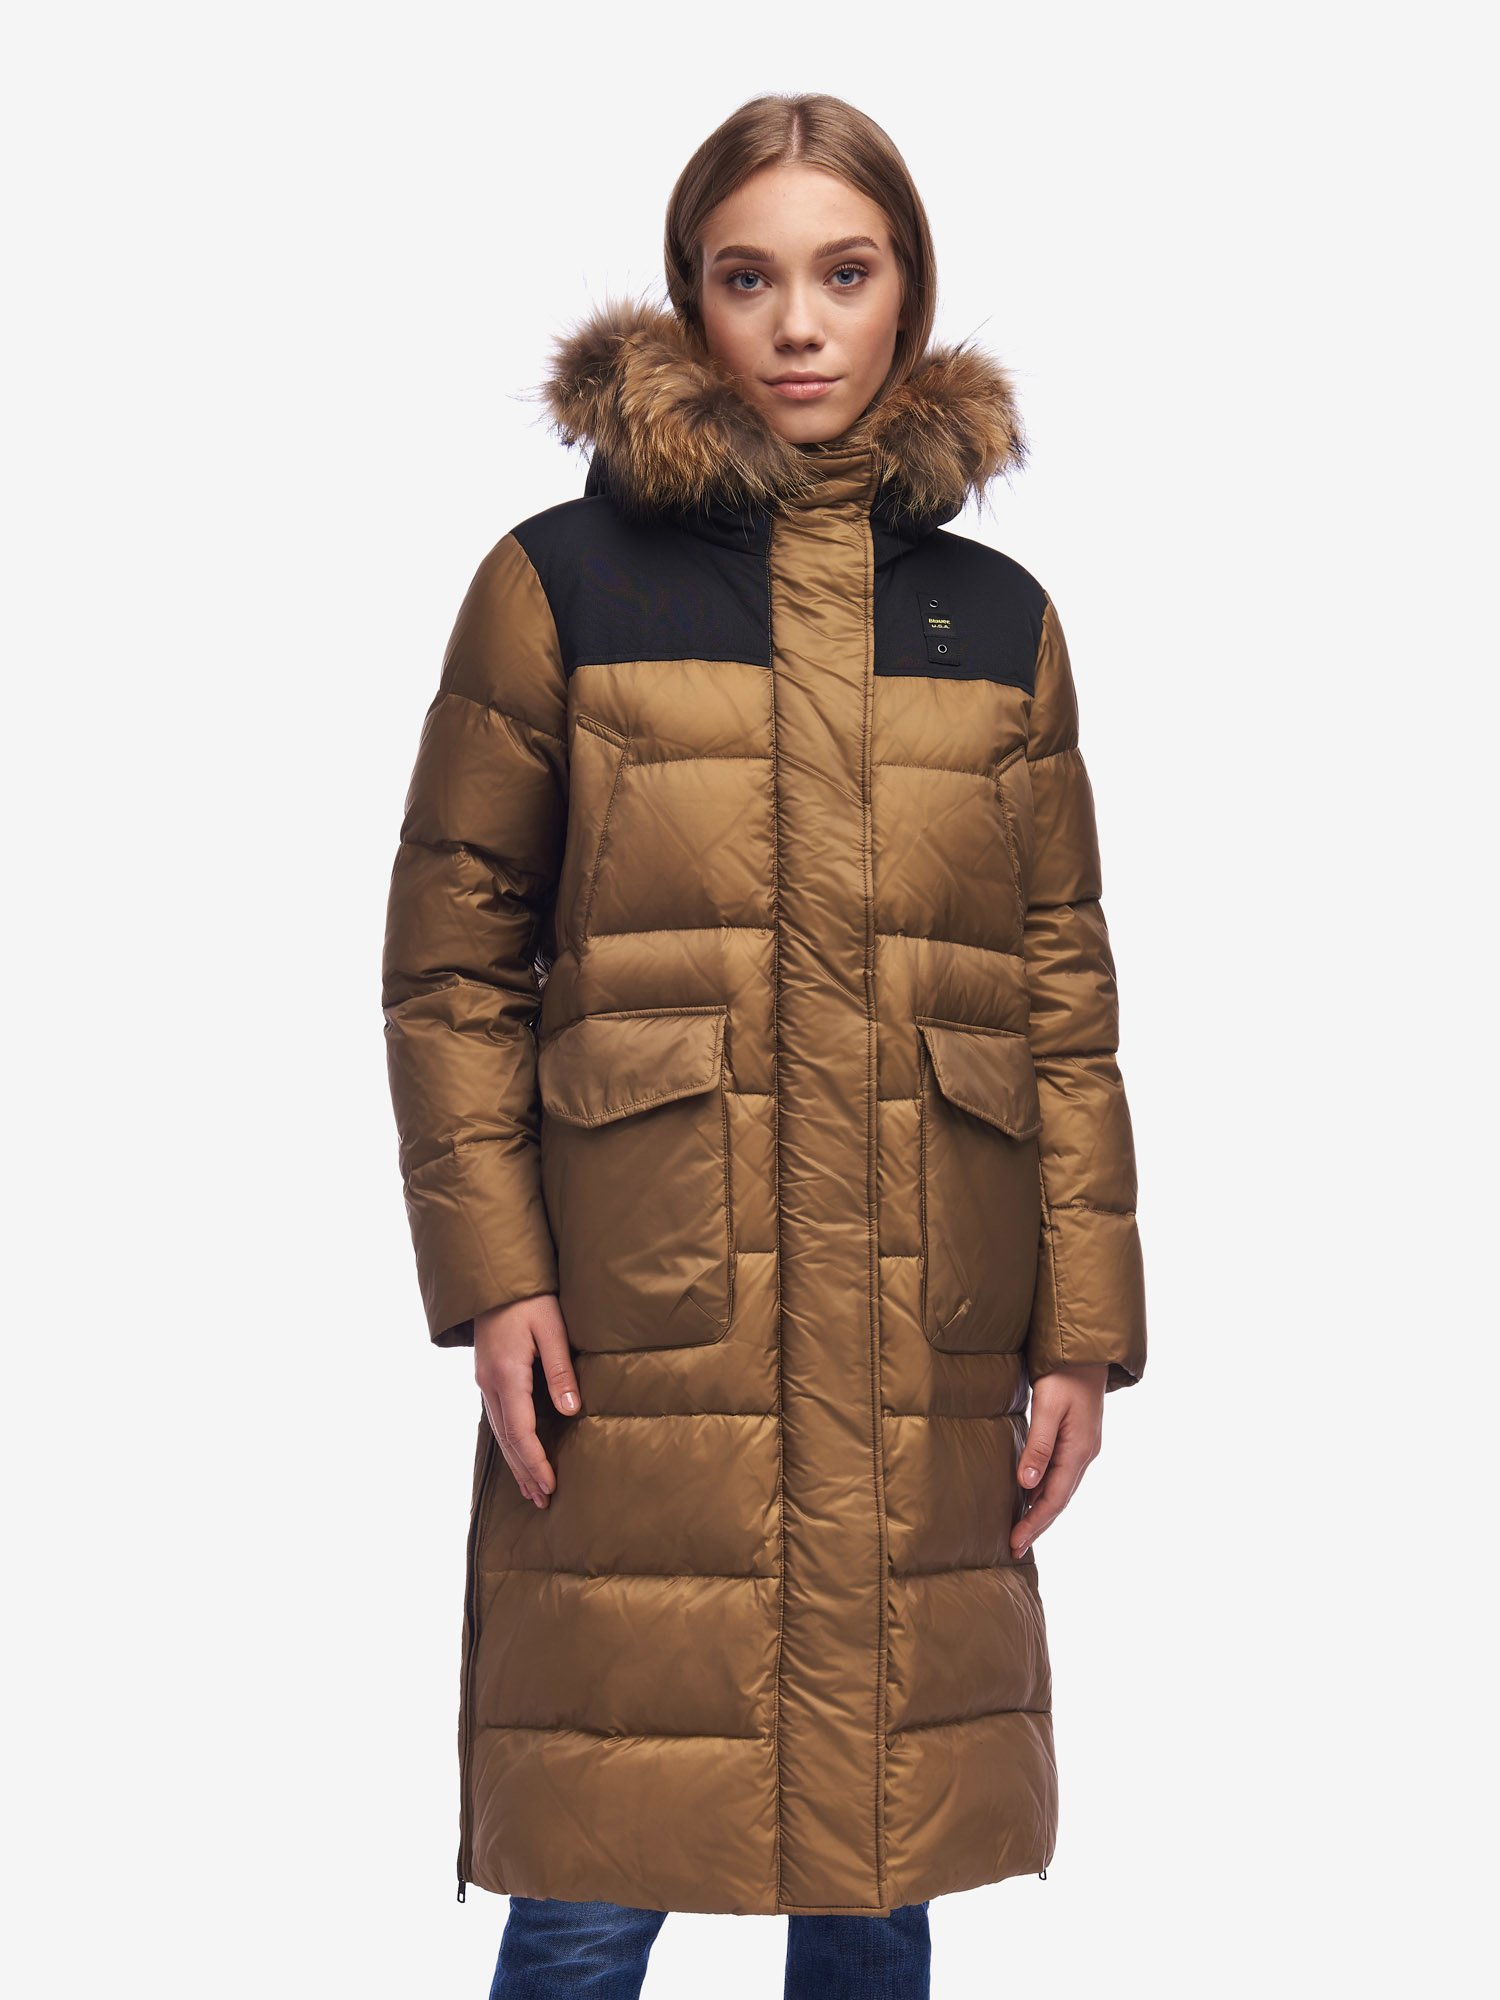 Blauer - LAWRENCE LONG DOWN JACKET WITH SIDE SLITS - Otter - Blauer